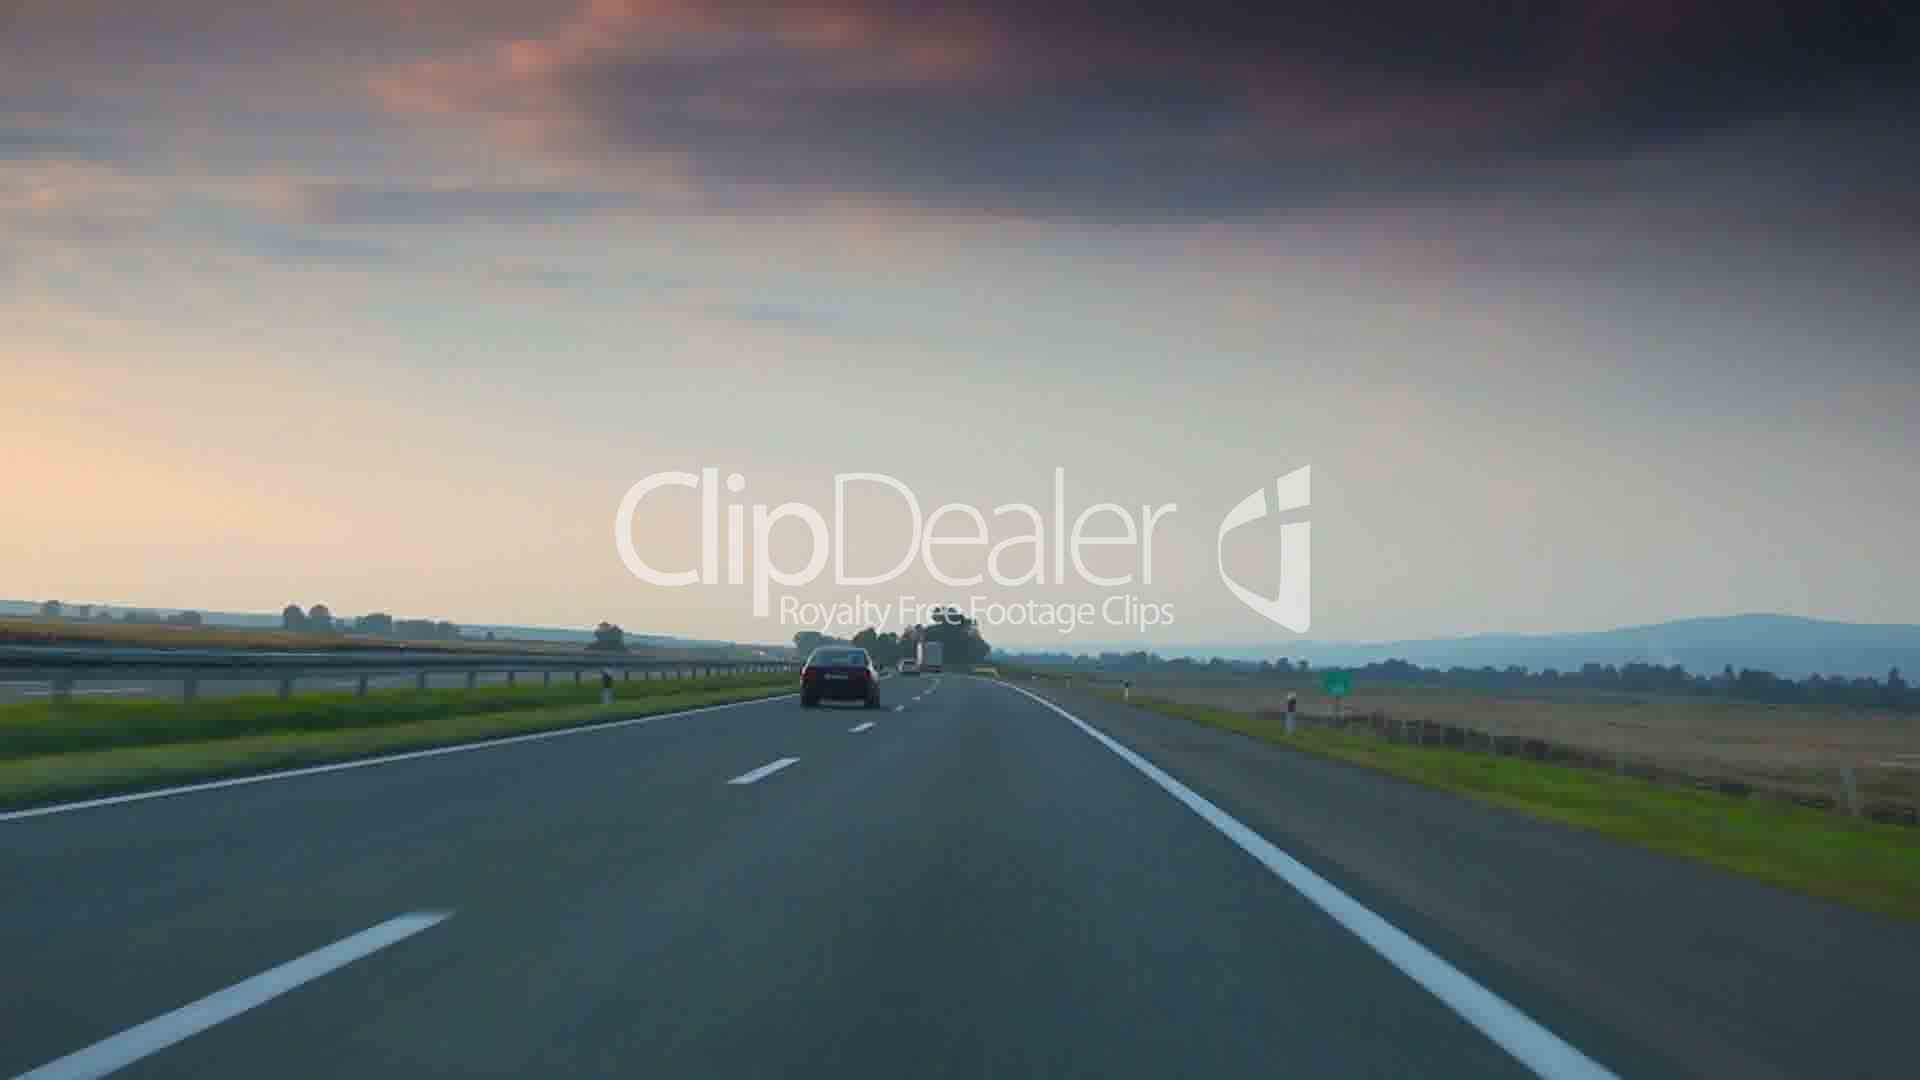 Car driving on highway: Royalty-free video and stock footage